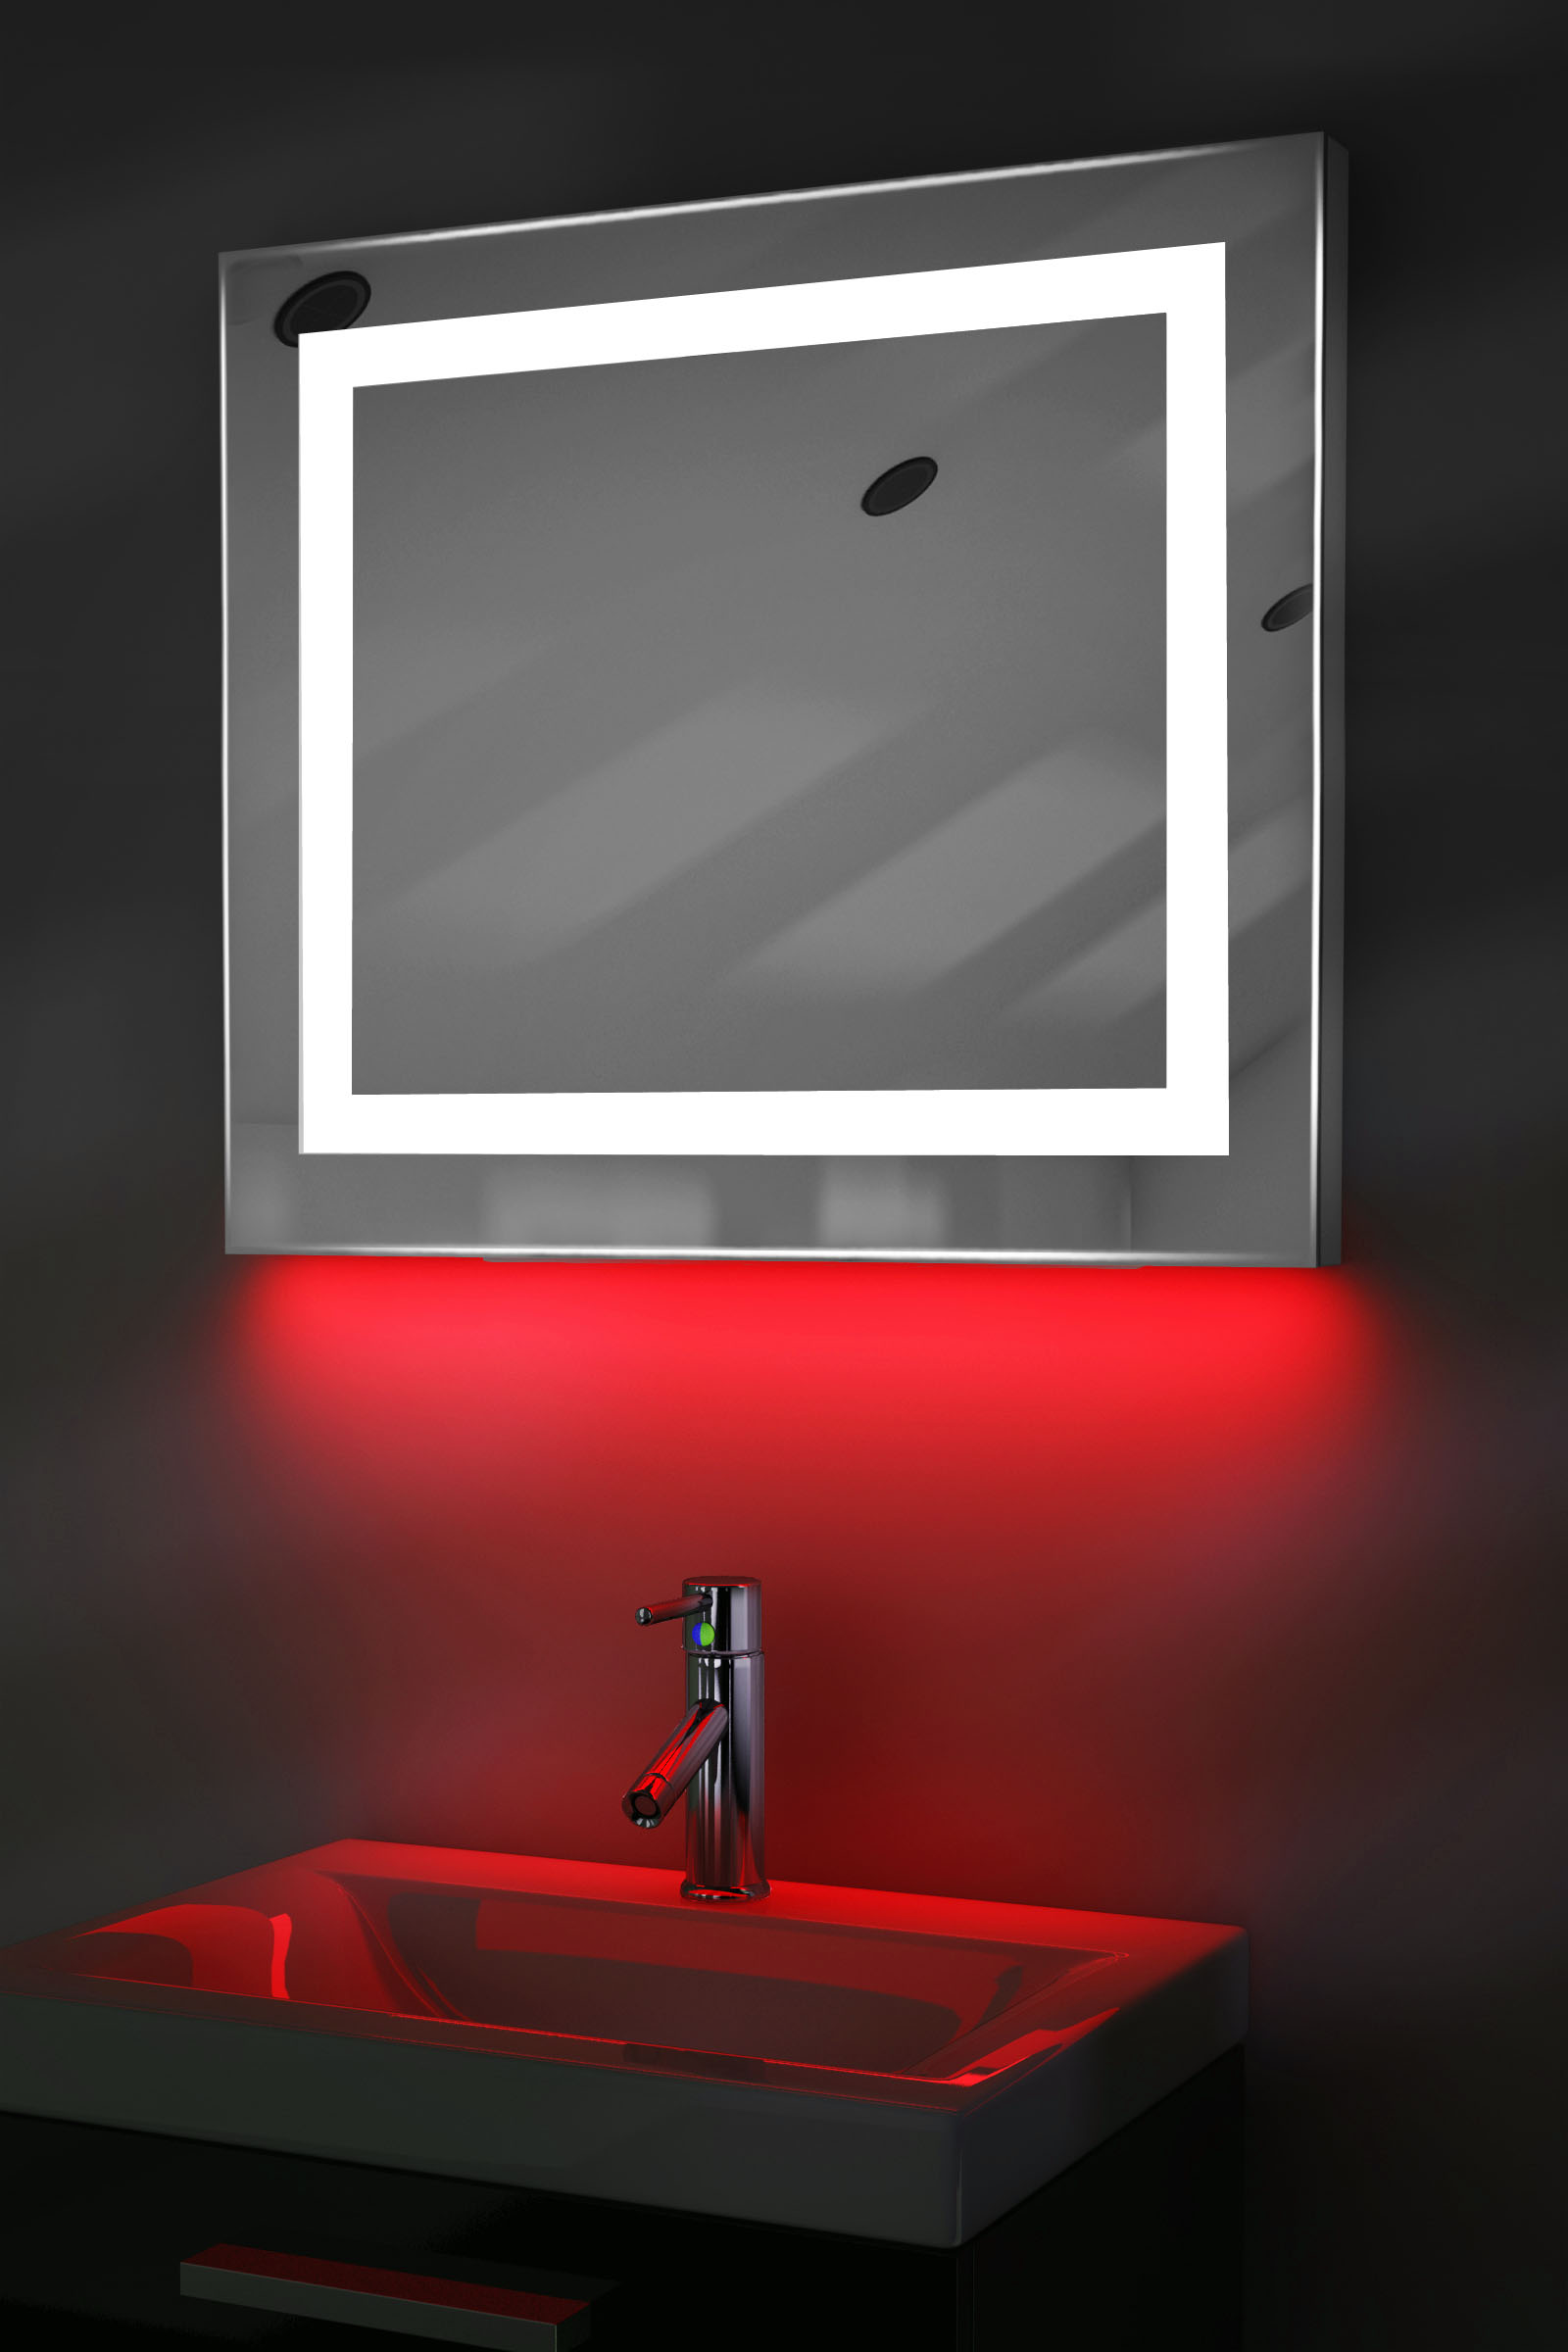 miroir toilette rasage bluetooth anti bu e capteur rasoir lumineux k161iraud ebay. Black Bedroom Furniture Sets. Home Design Ideas